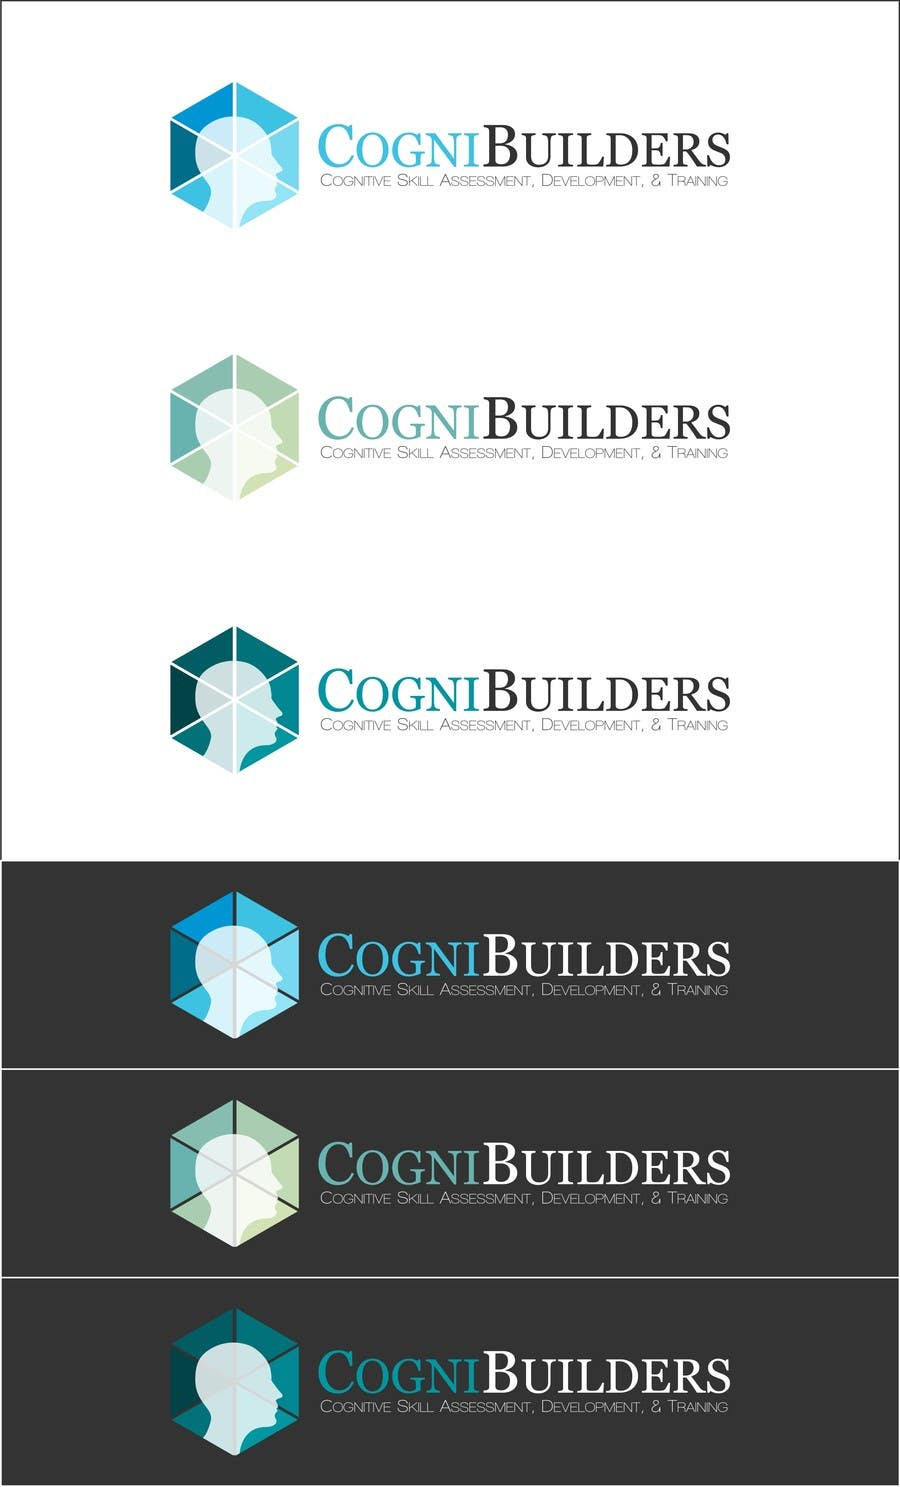 Contest Entry #86 for Design a Logo for Cognibuilders